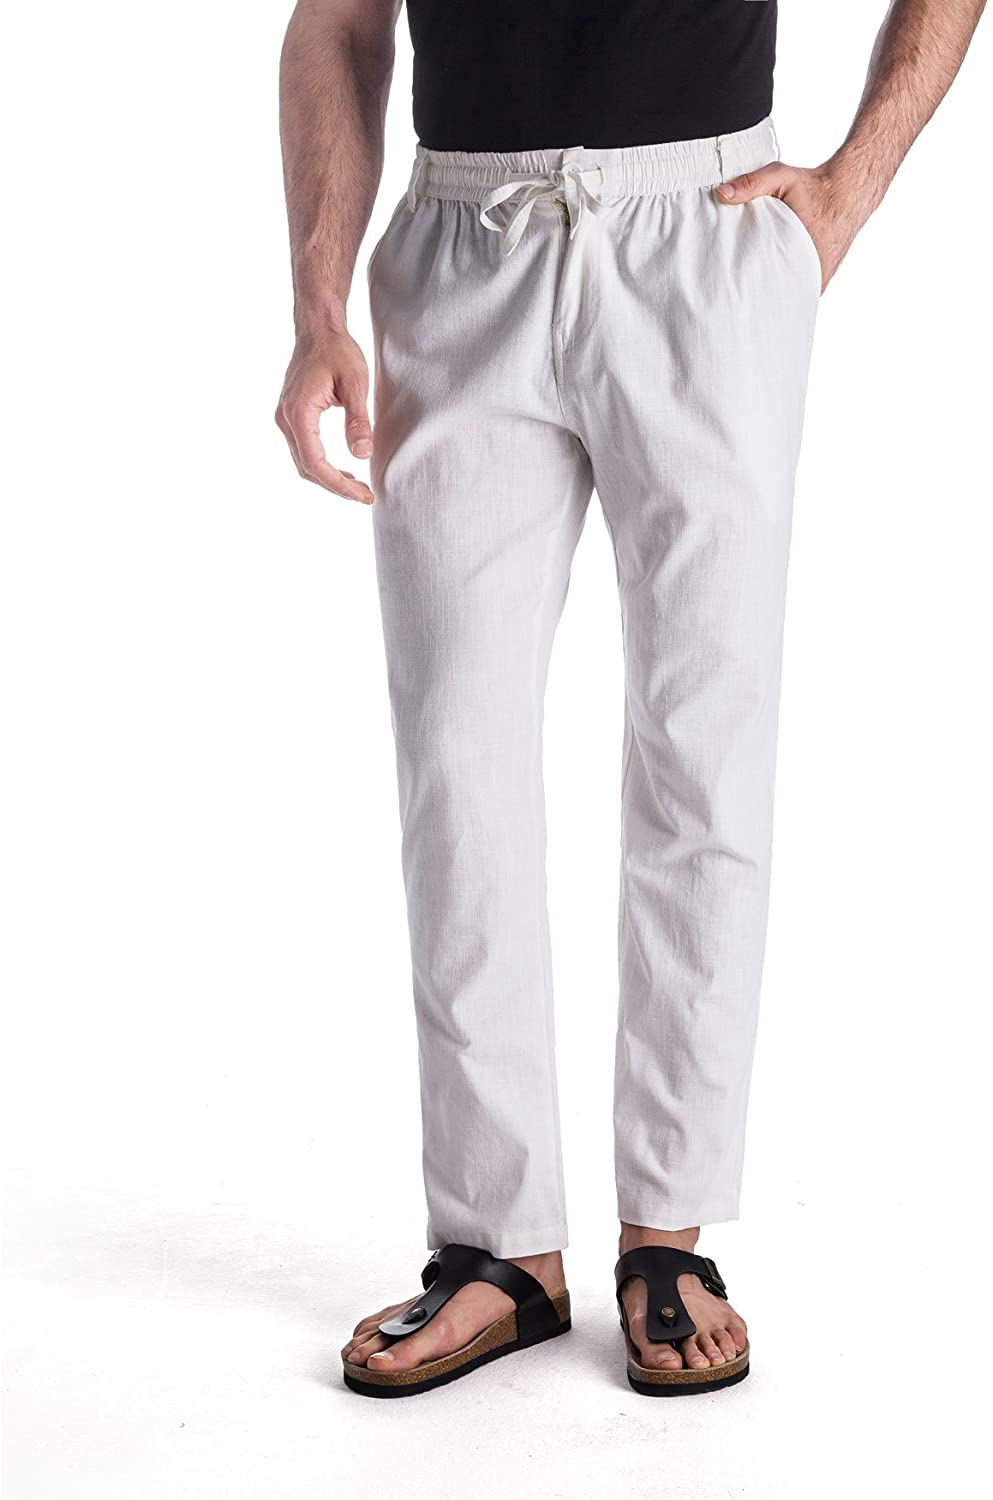 MUSE FATH Men's Linen Drawstring Casual Beach Pants-Lightweight Summer Trousers at  Men's Clothing store